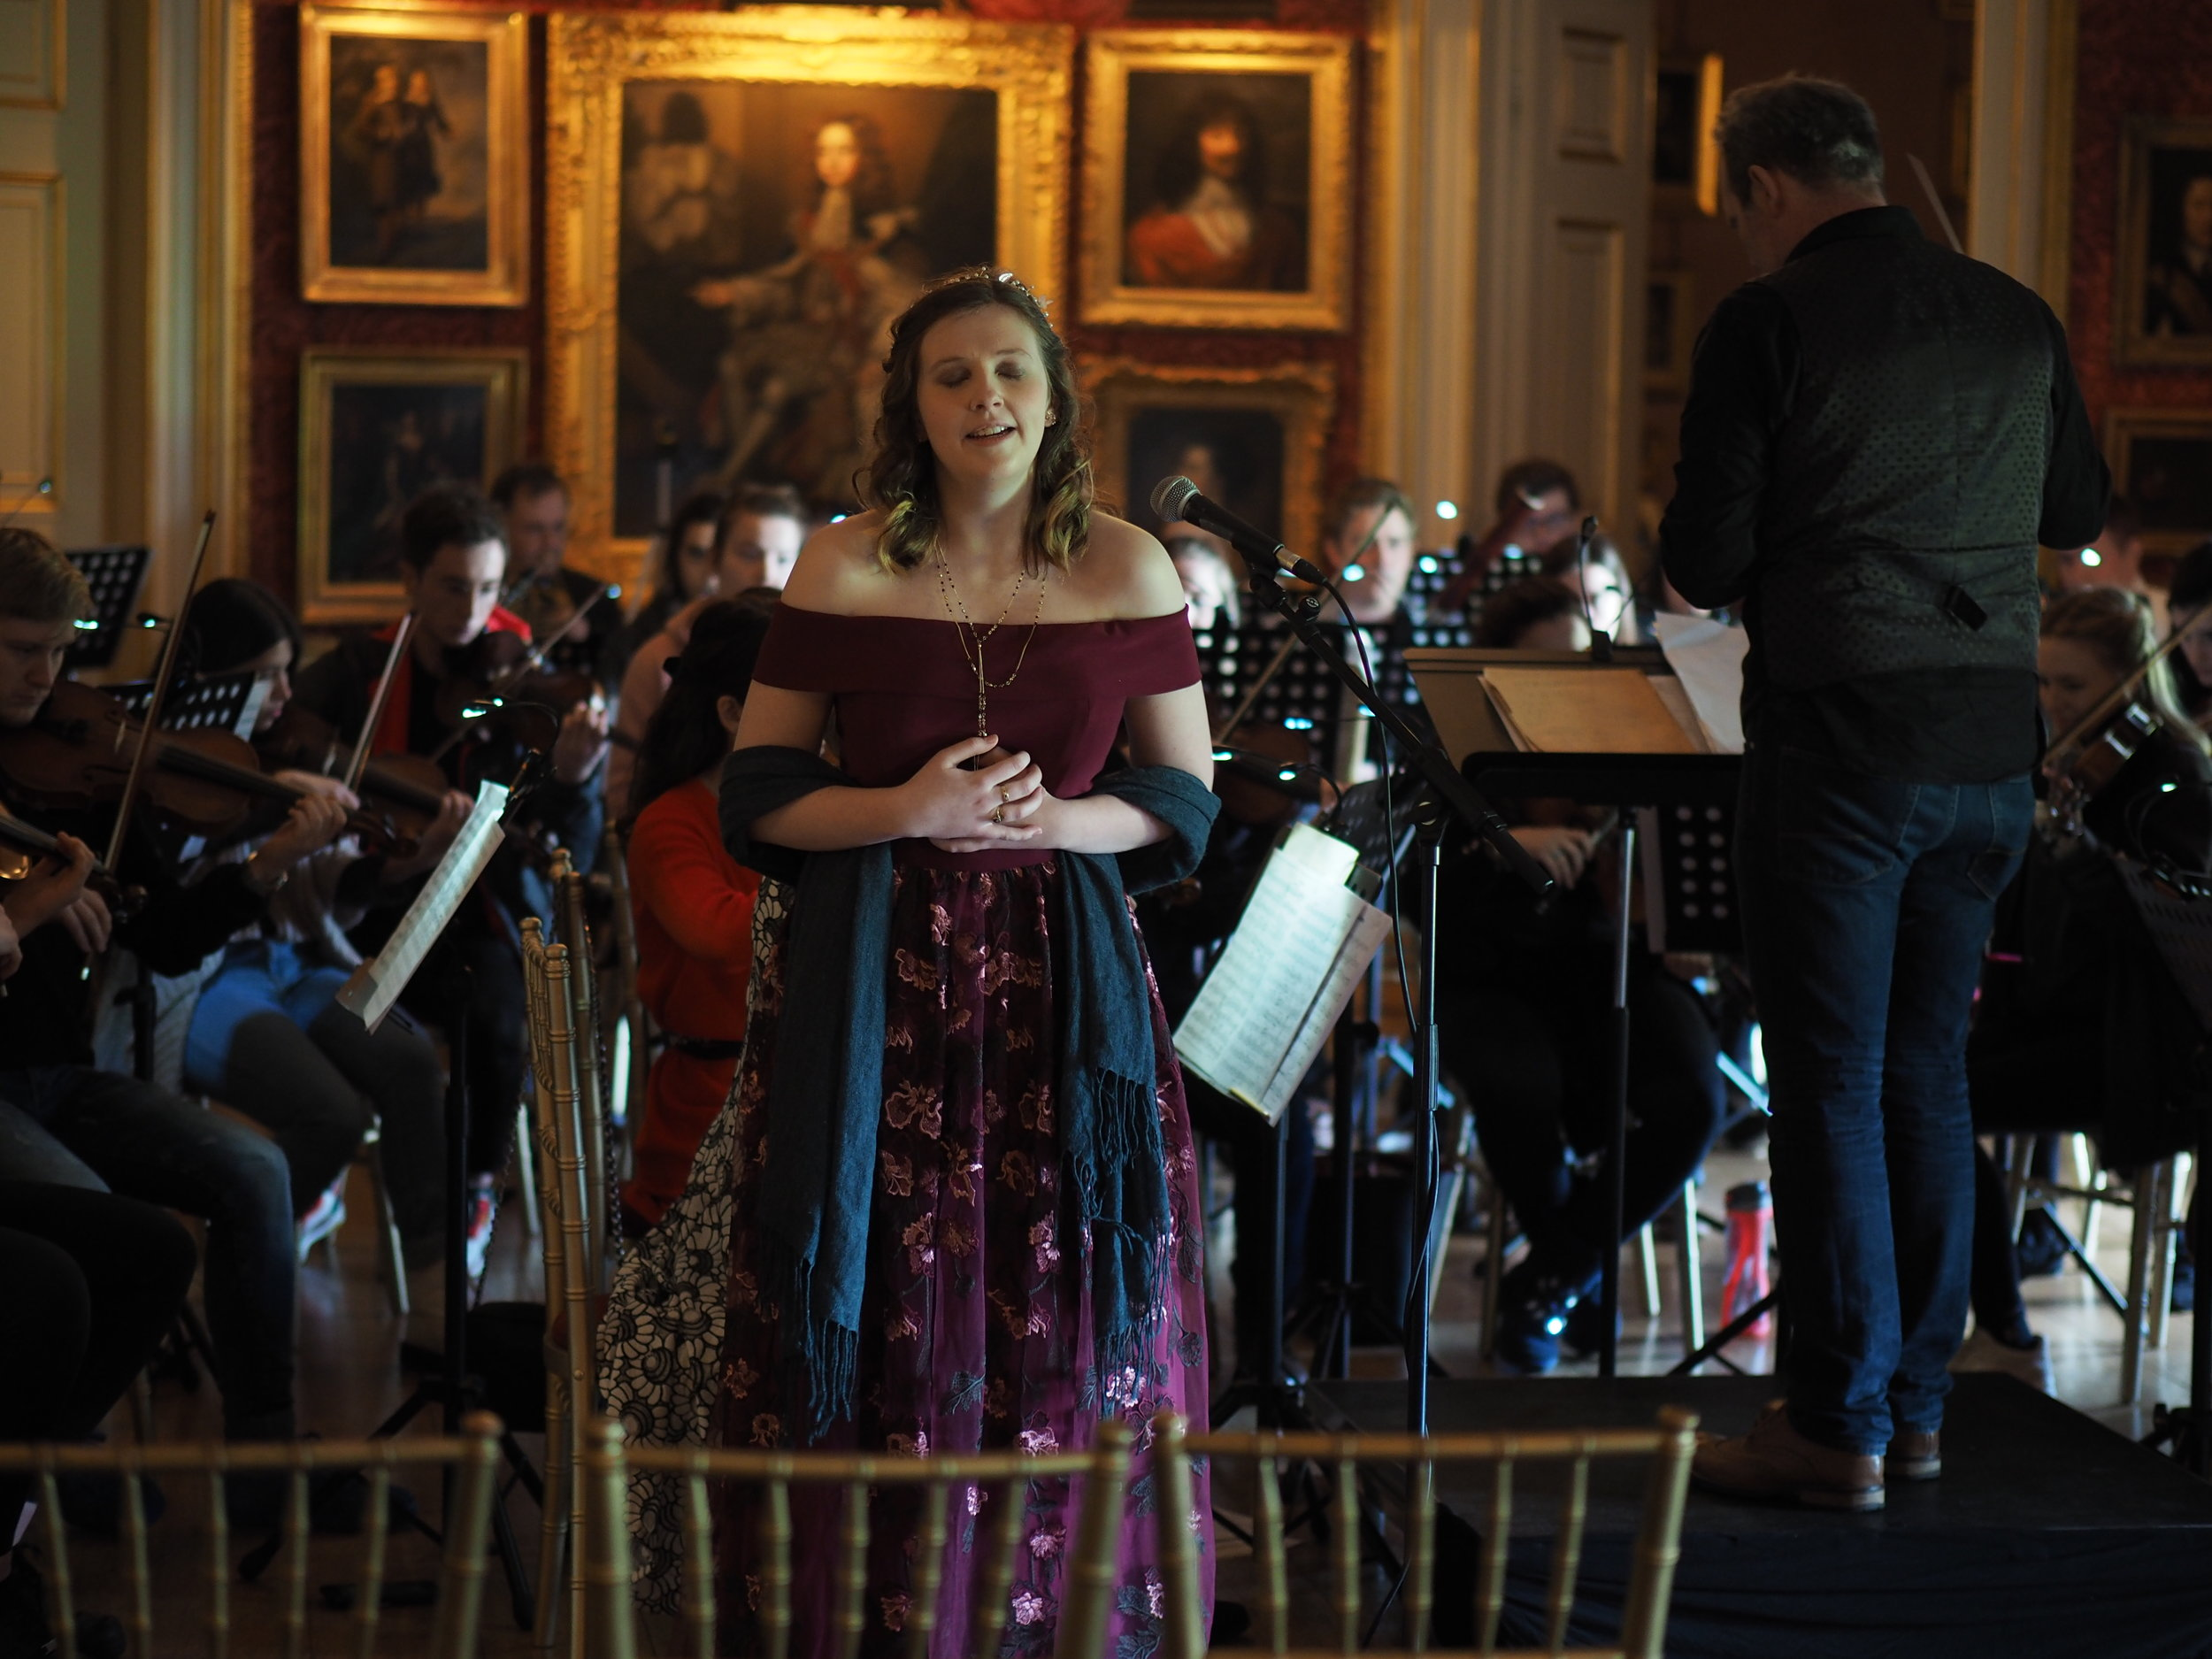 Photograph:  Kiera singing in the ballroom of Goodwood House. Photograph taken by Andrew Worsfold